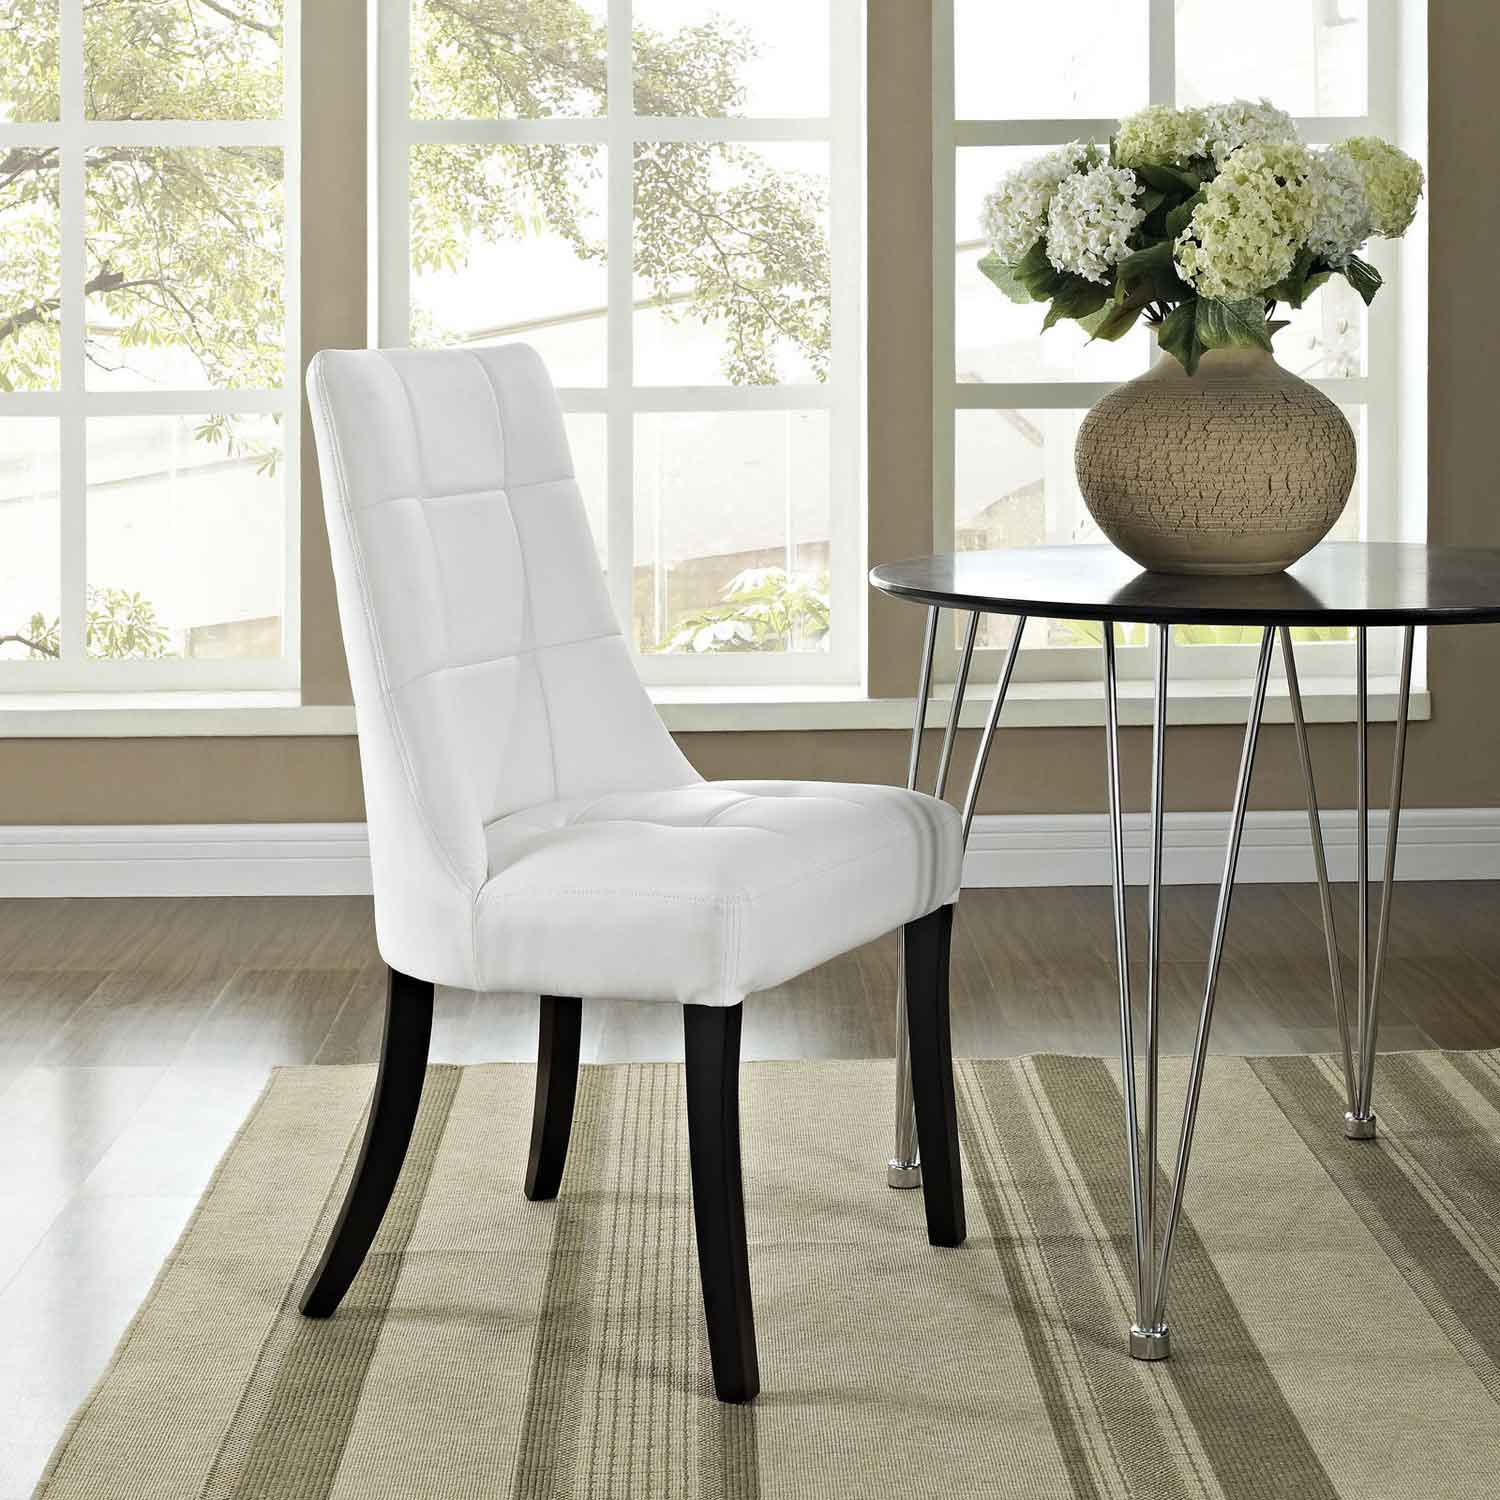 Modway Noblesse Dining Vinyl Side Chair - White